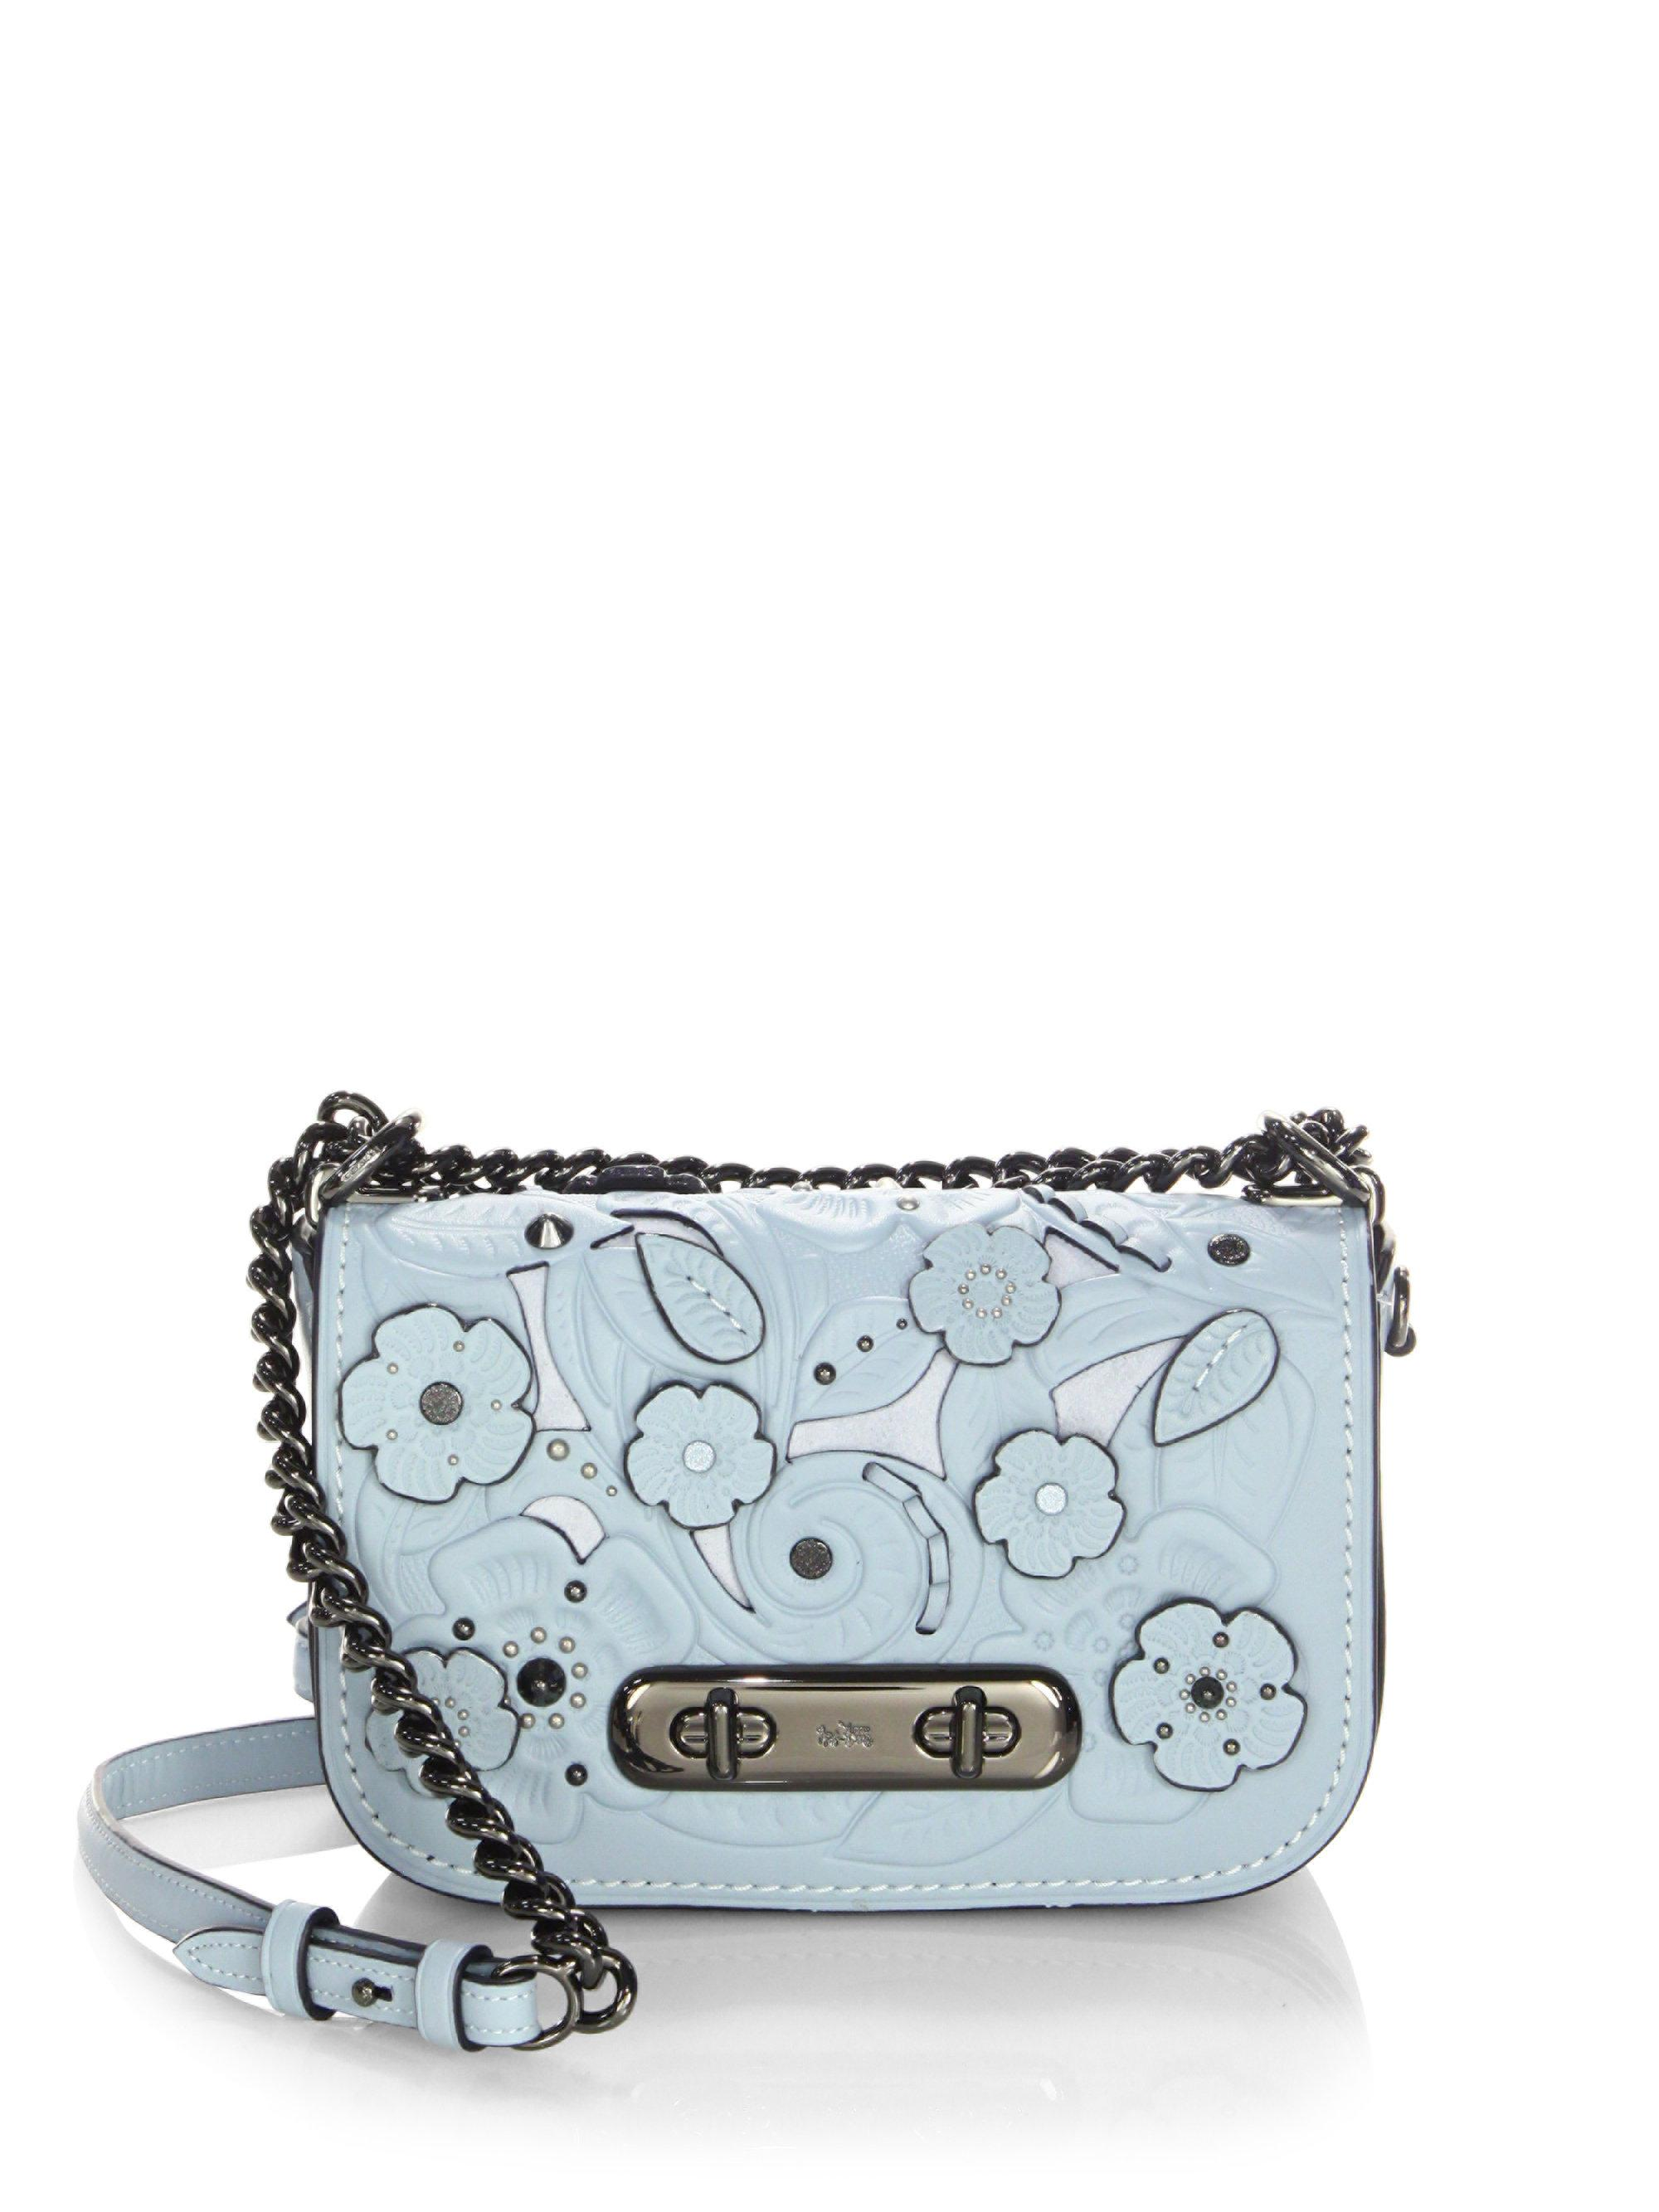 8494d89d1412 Lyst - COACH Swagger Flower Leather Crossbody Bag in Blue